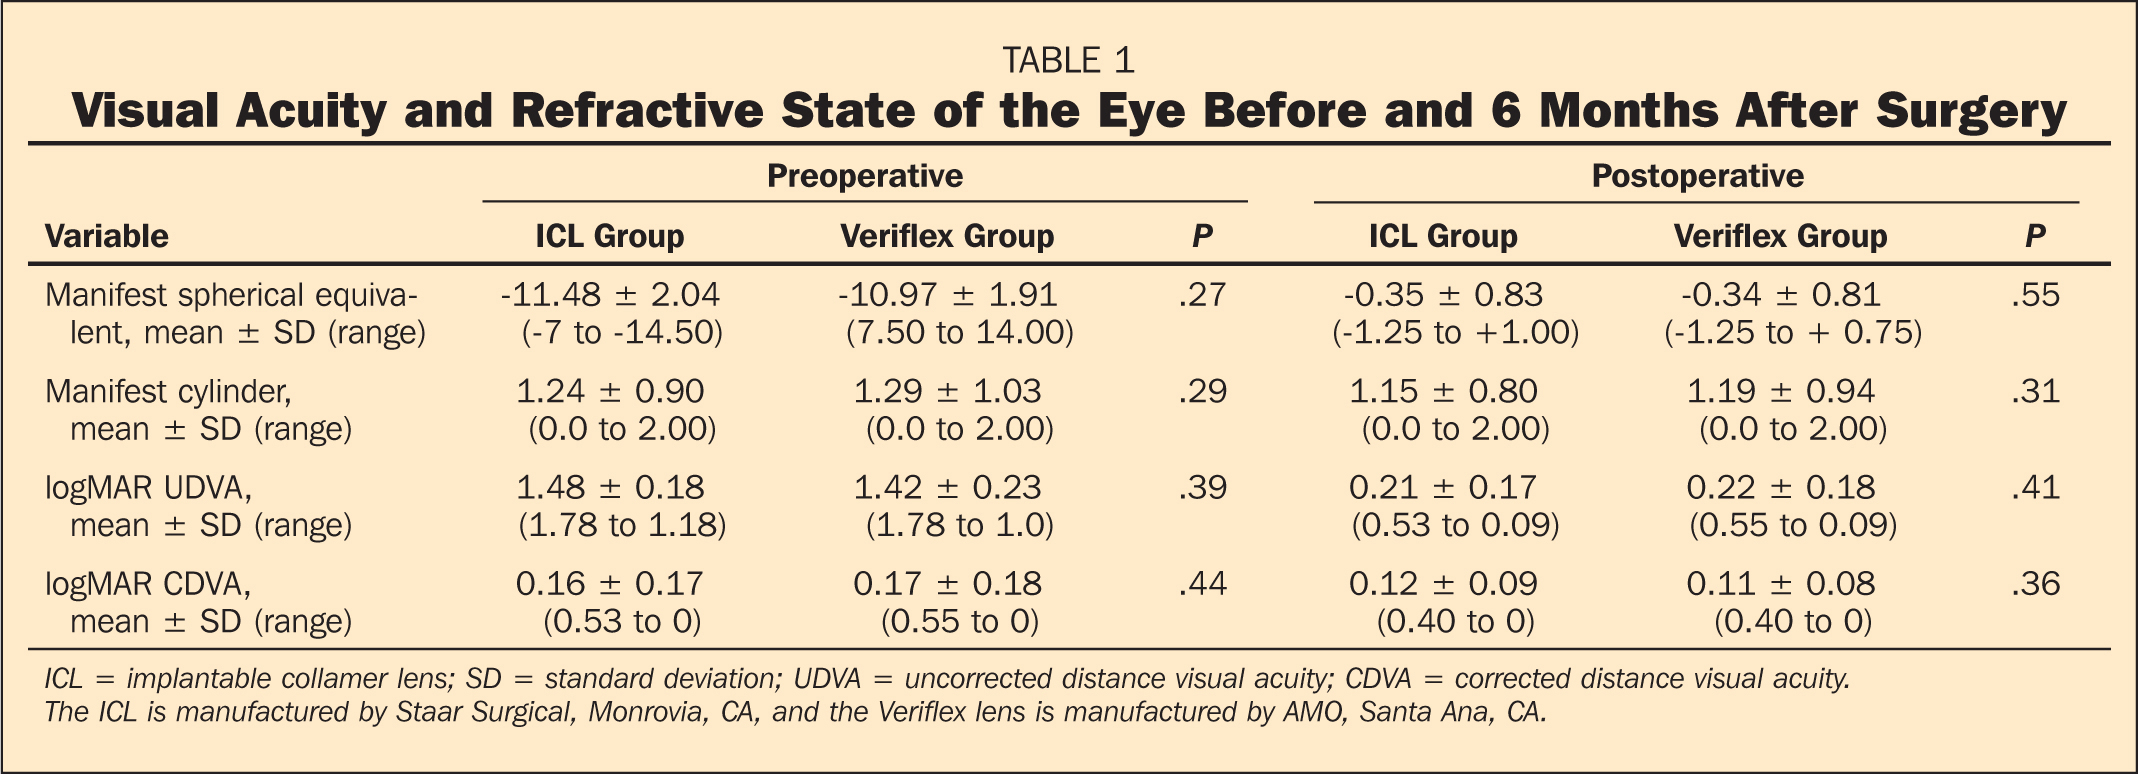 Visual Acuity and Refractive State of the Eye Before and 6 Months After Surgery